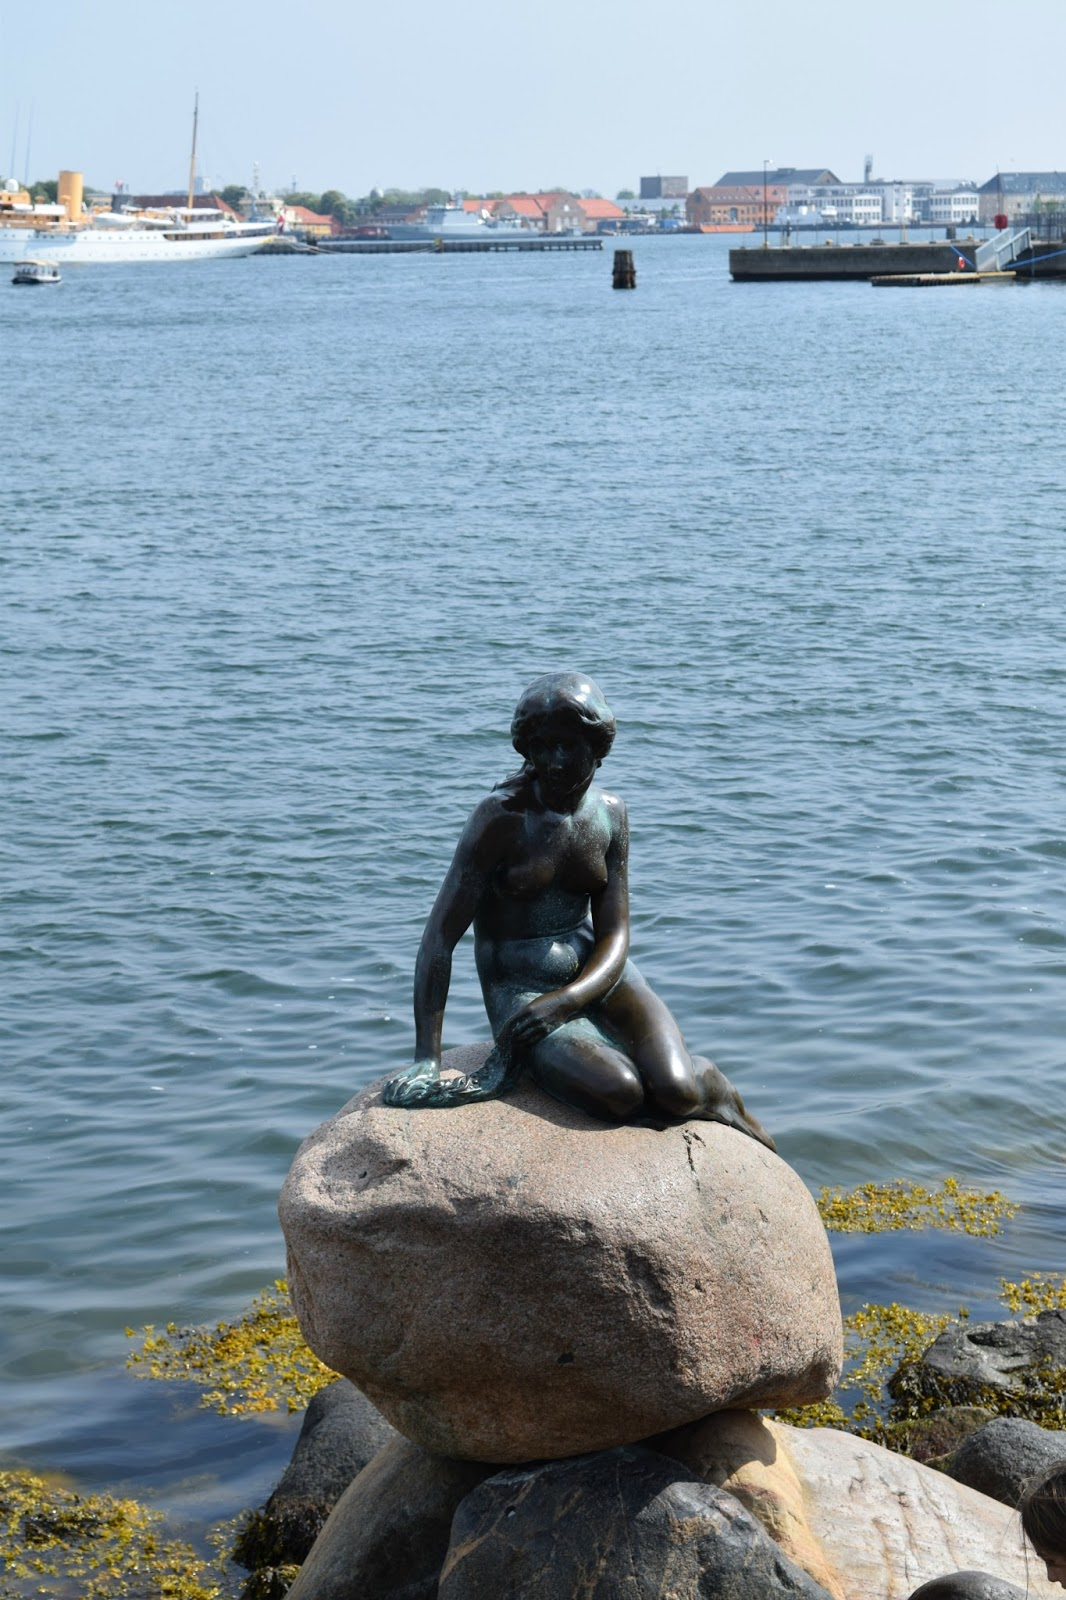 The Little Mermaid Statue at the Harbour in Copenhagen